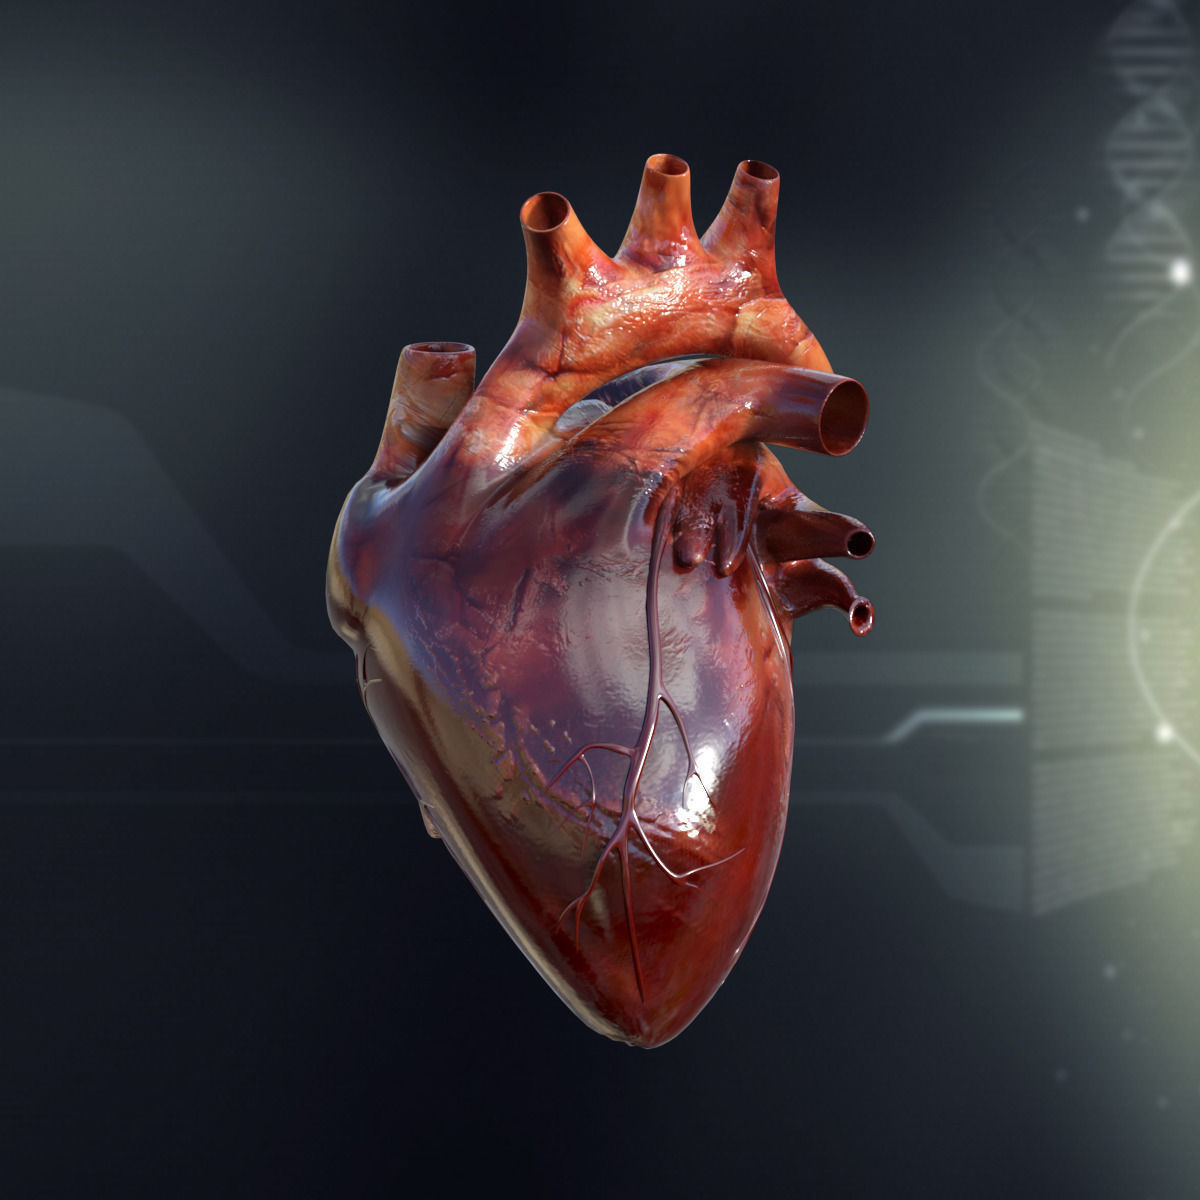 Heart anatomy 3d